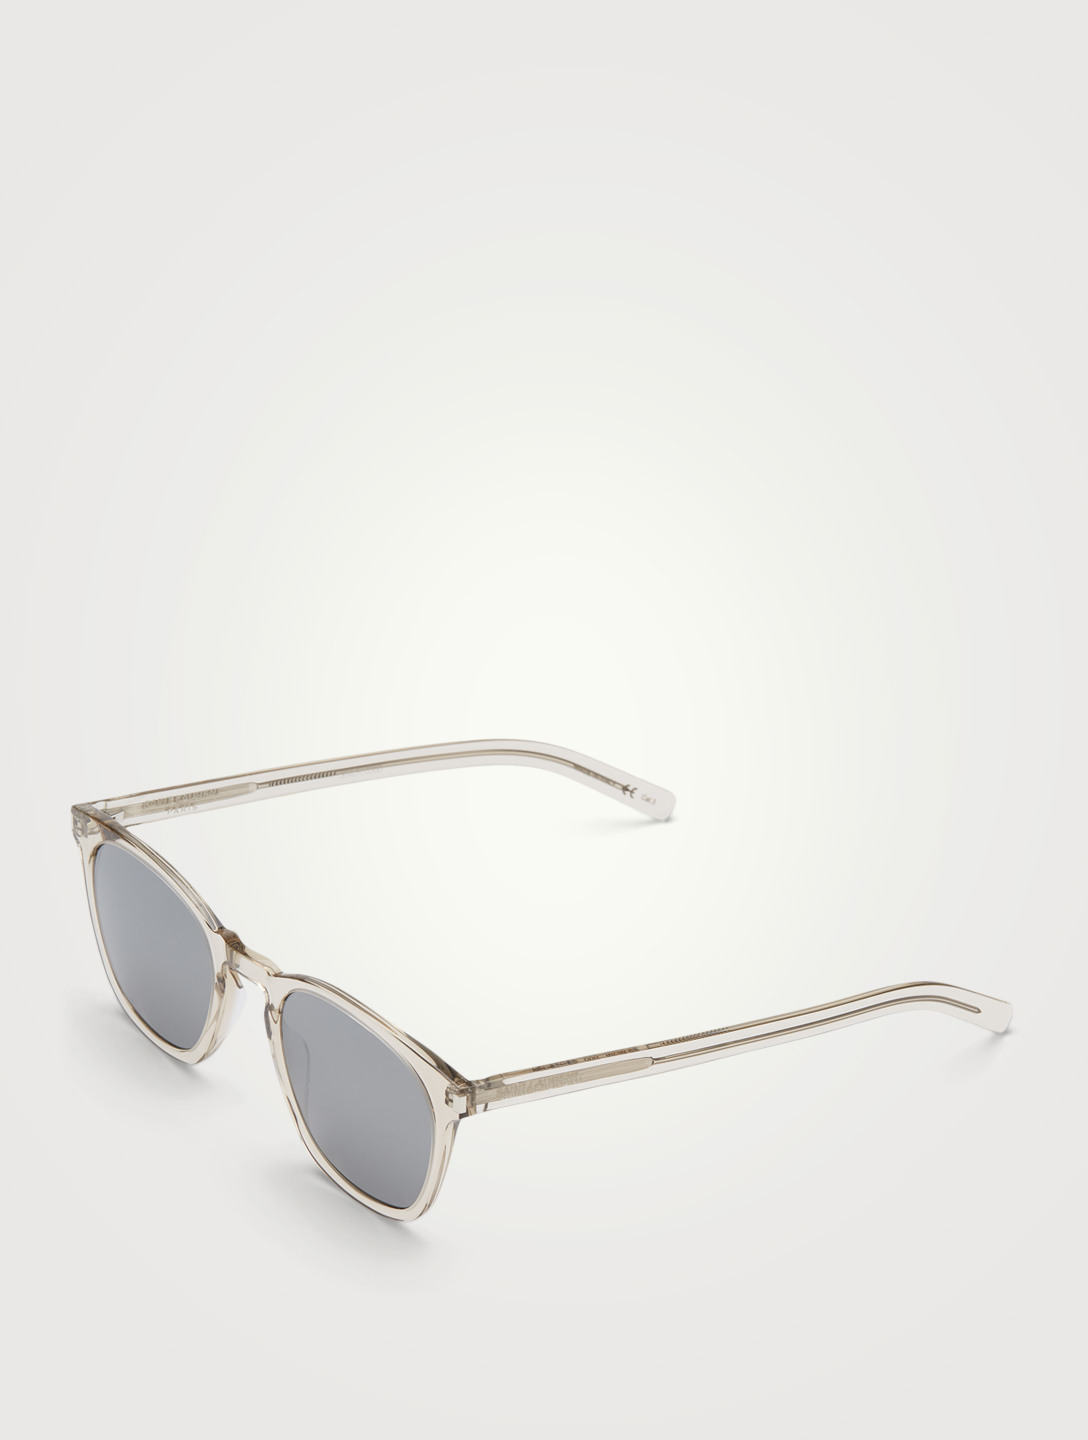 SAINT LAURENT SL 28 Square Sunglasses Men's White